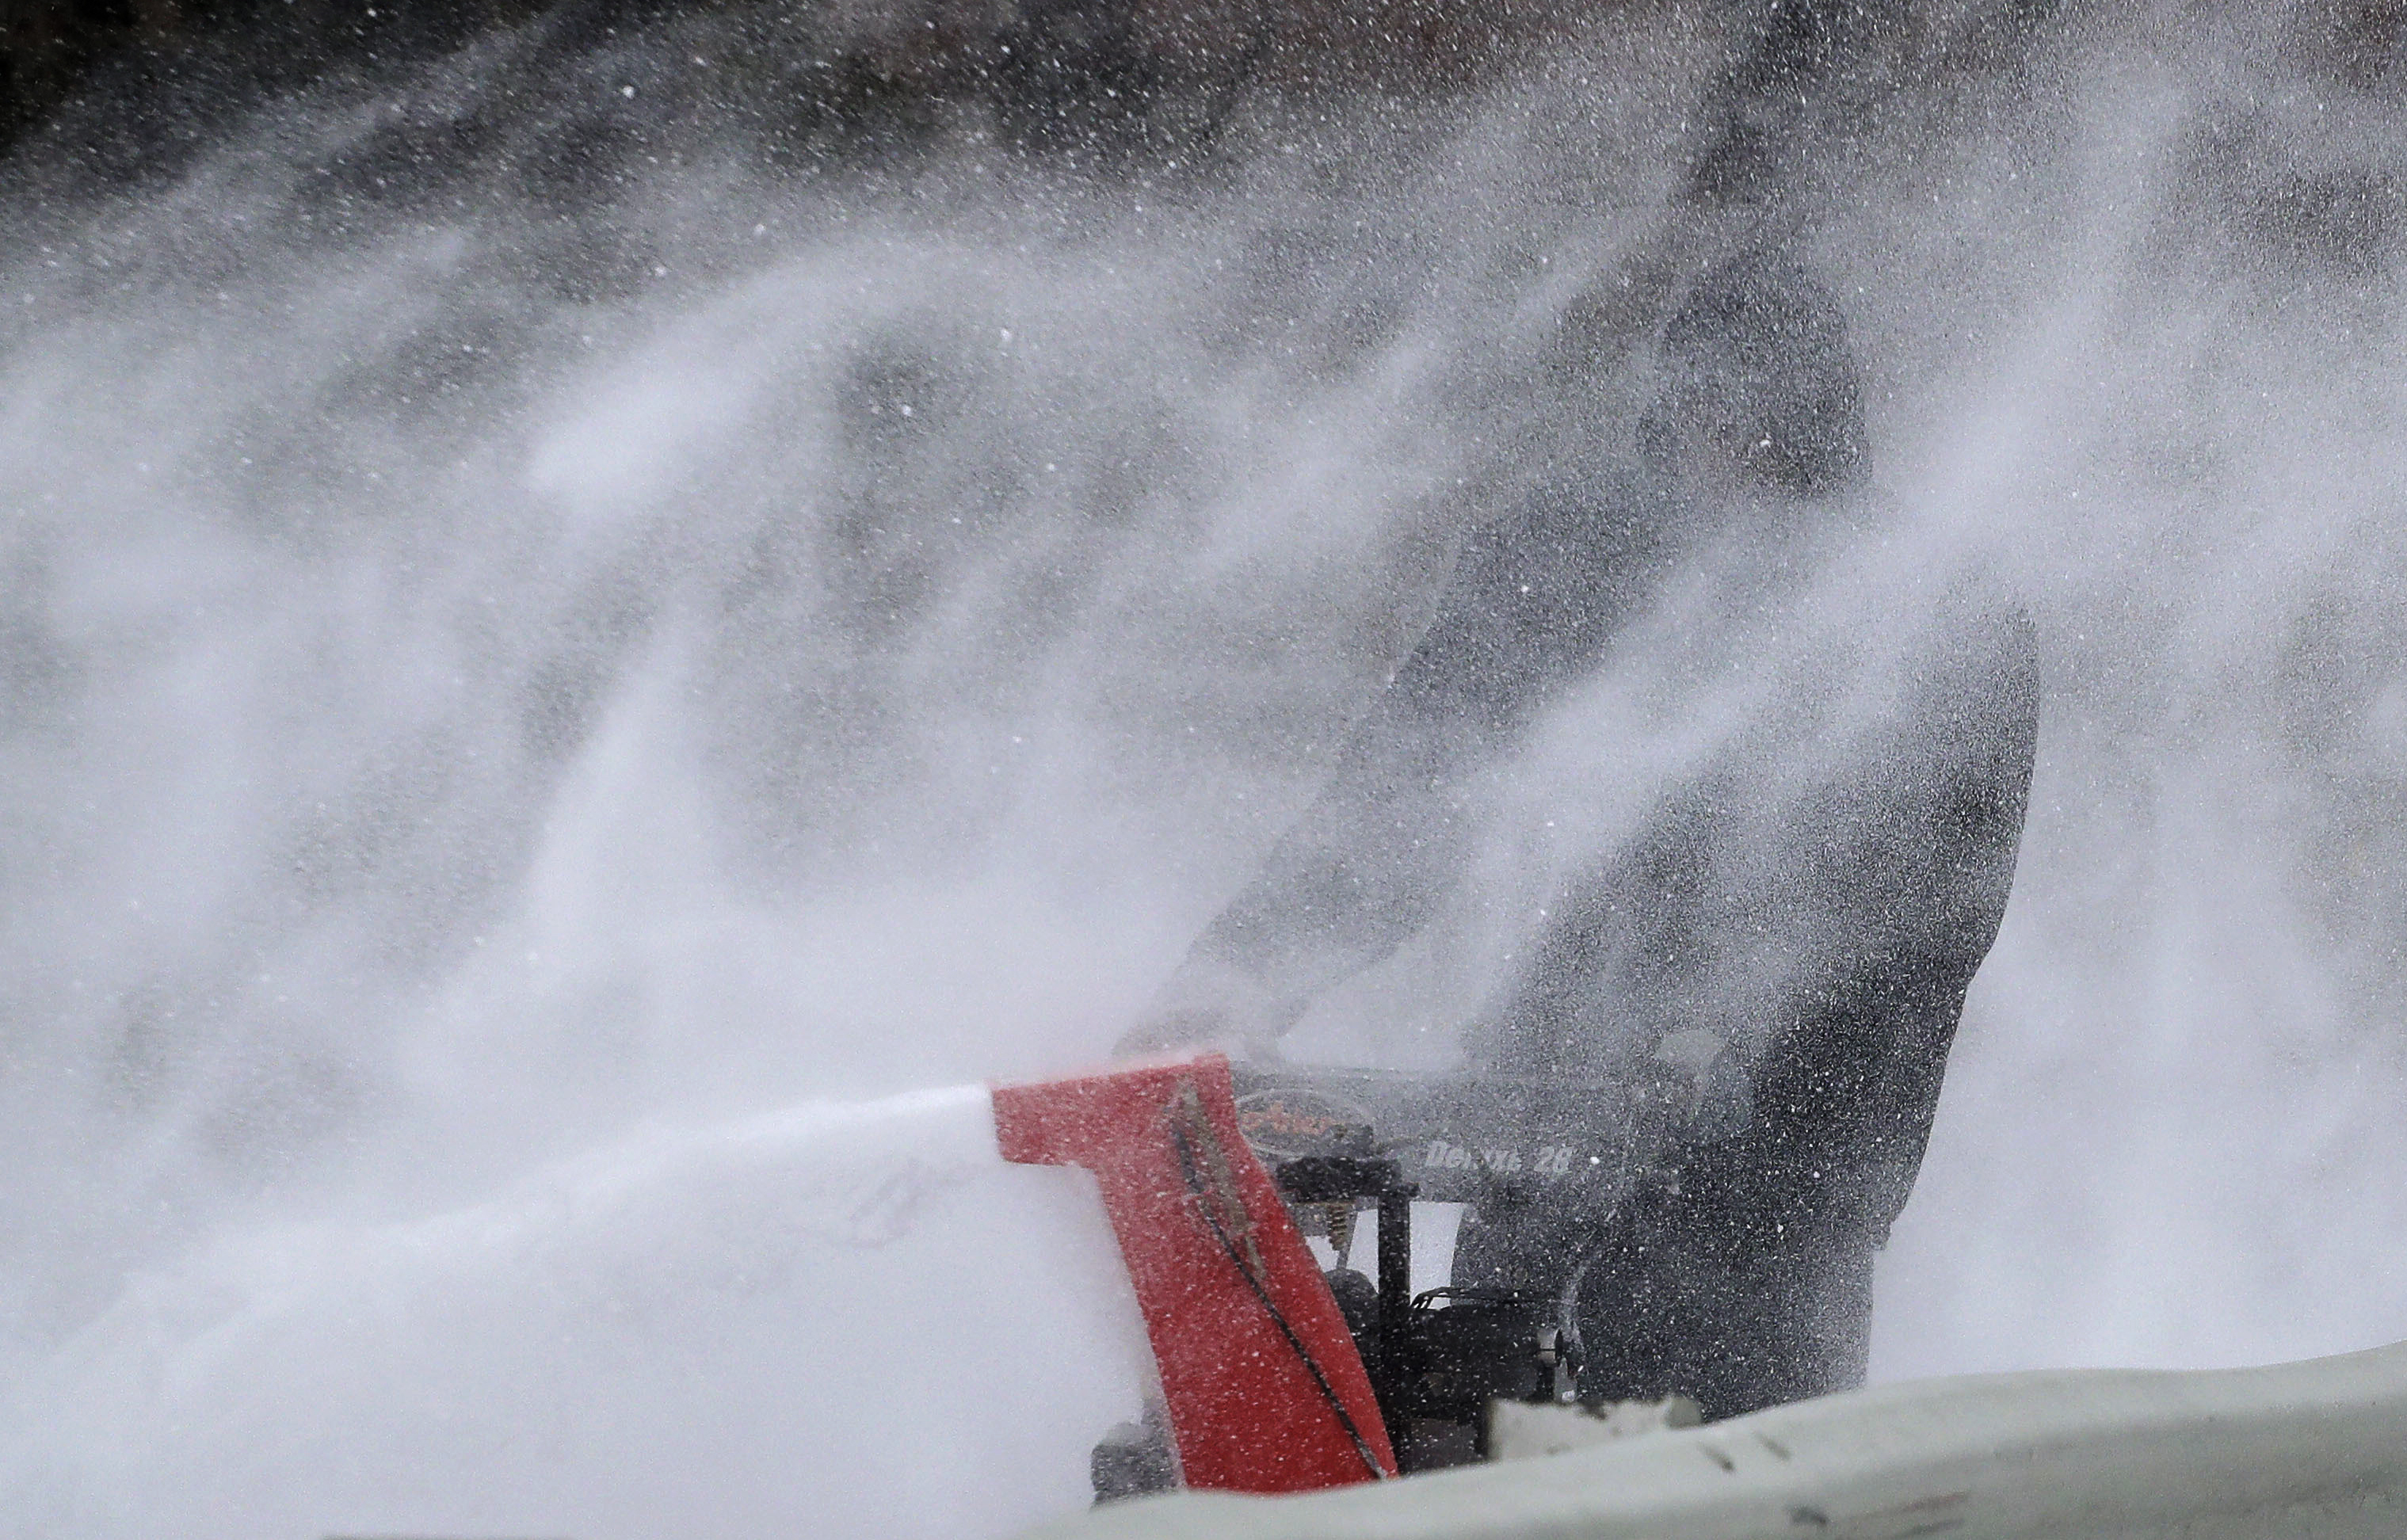 A gust of wind blows snow back at Roger Lane, a custodian at Yonkers Public School 17, as he clears a sidewalk in front of the school with a snow blower during a snow storm in New York on March 14, 2017. (AP Photo/Julie Jacobson)